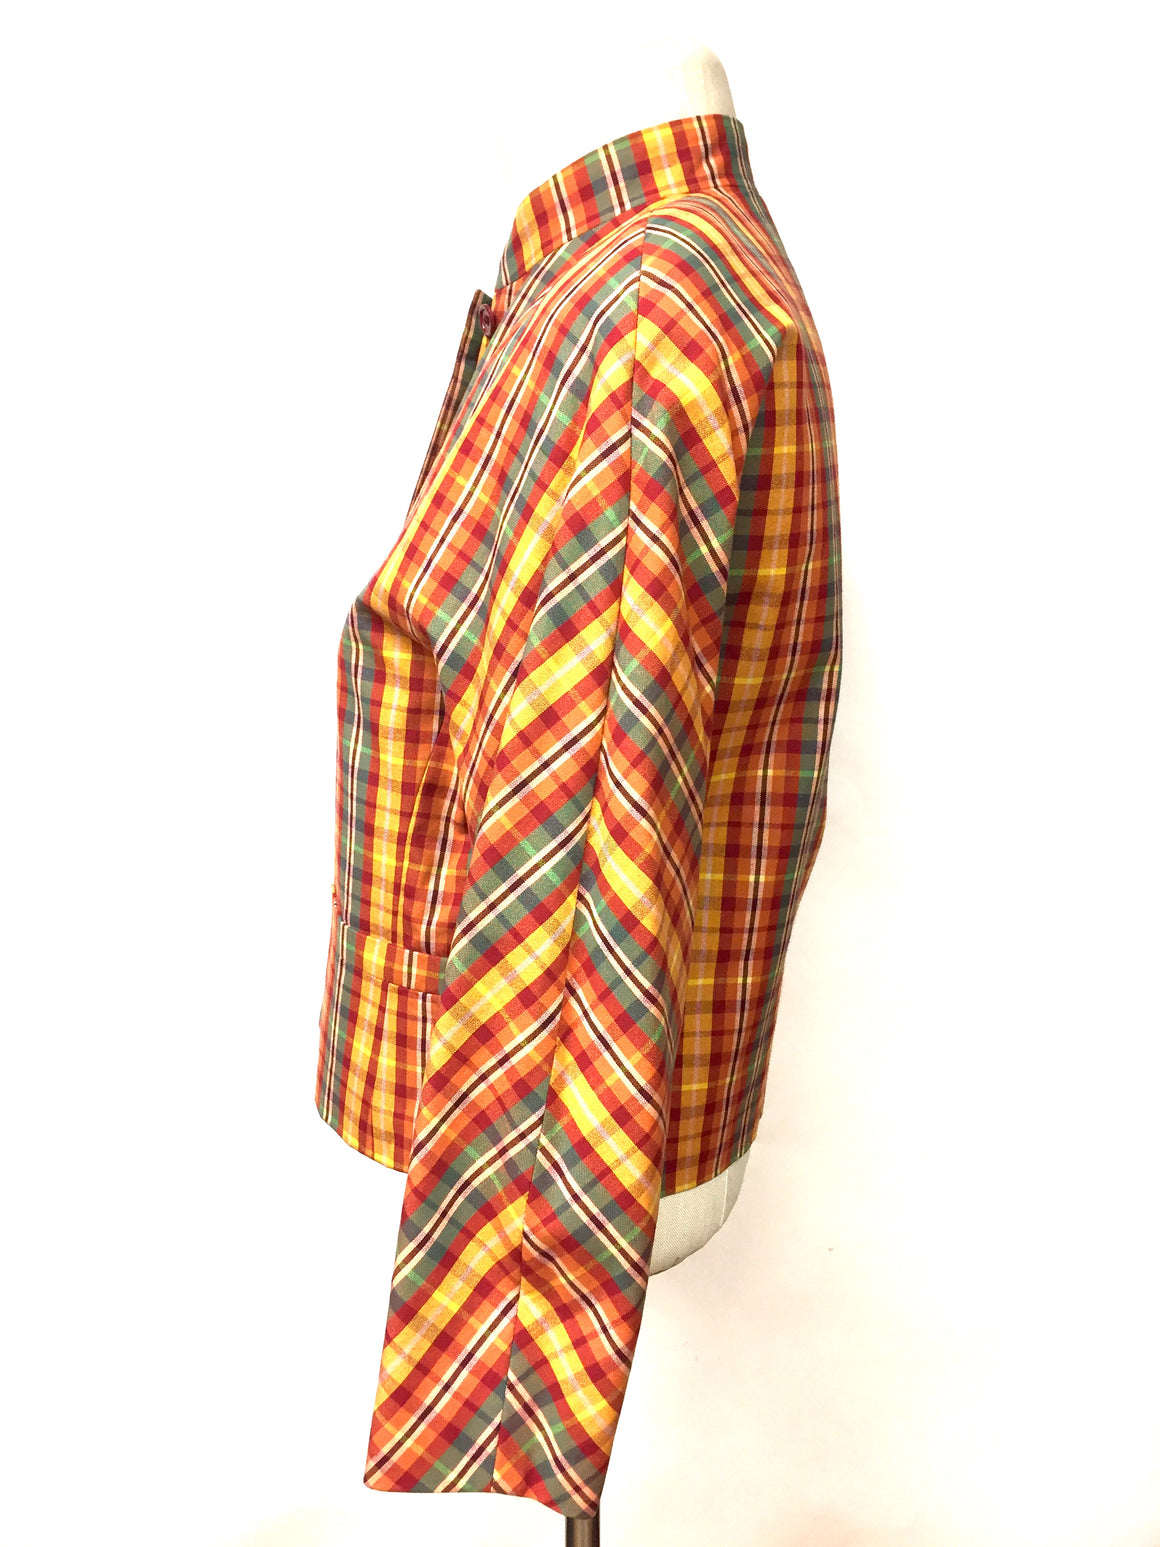 KENZO  Vintage Green Yellow Multicolor Plaid Cotton Cropped Jacket  Size: FR 38 / US 6